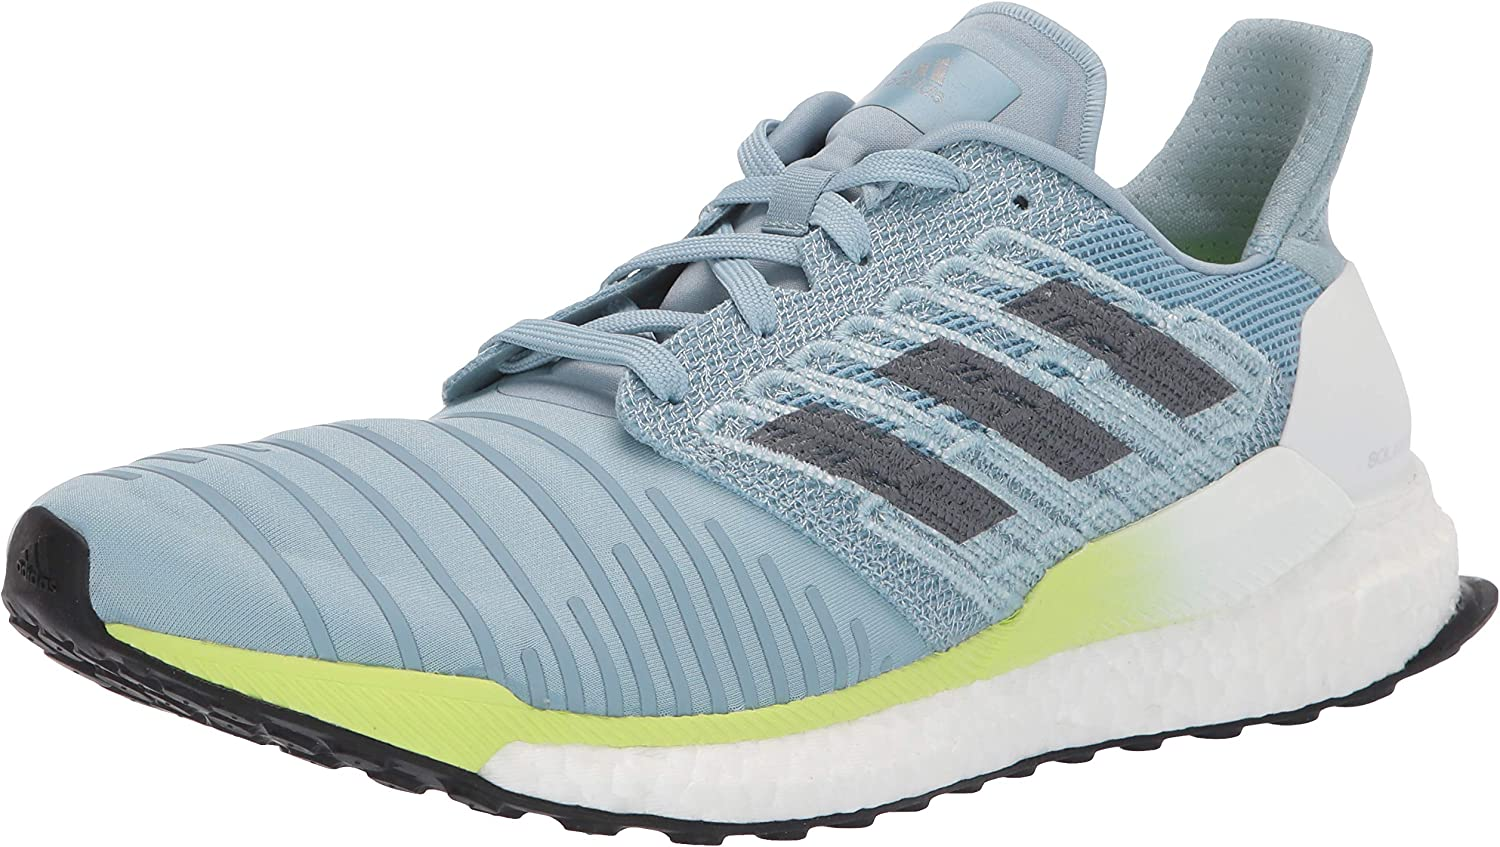 Adidas Womens SolarBoost Running shoes